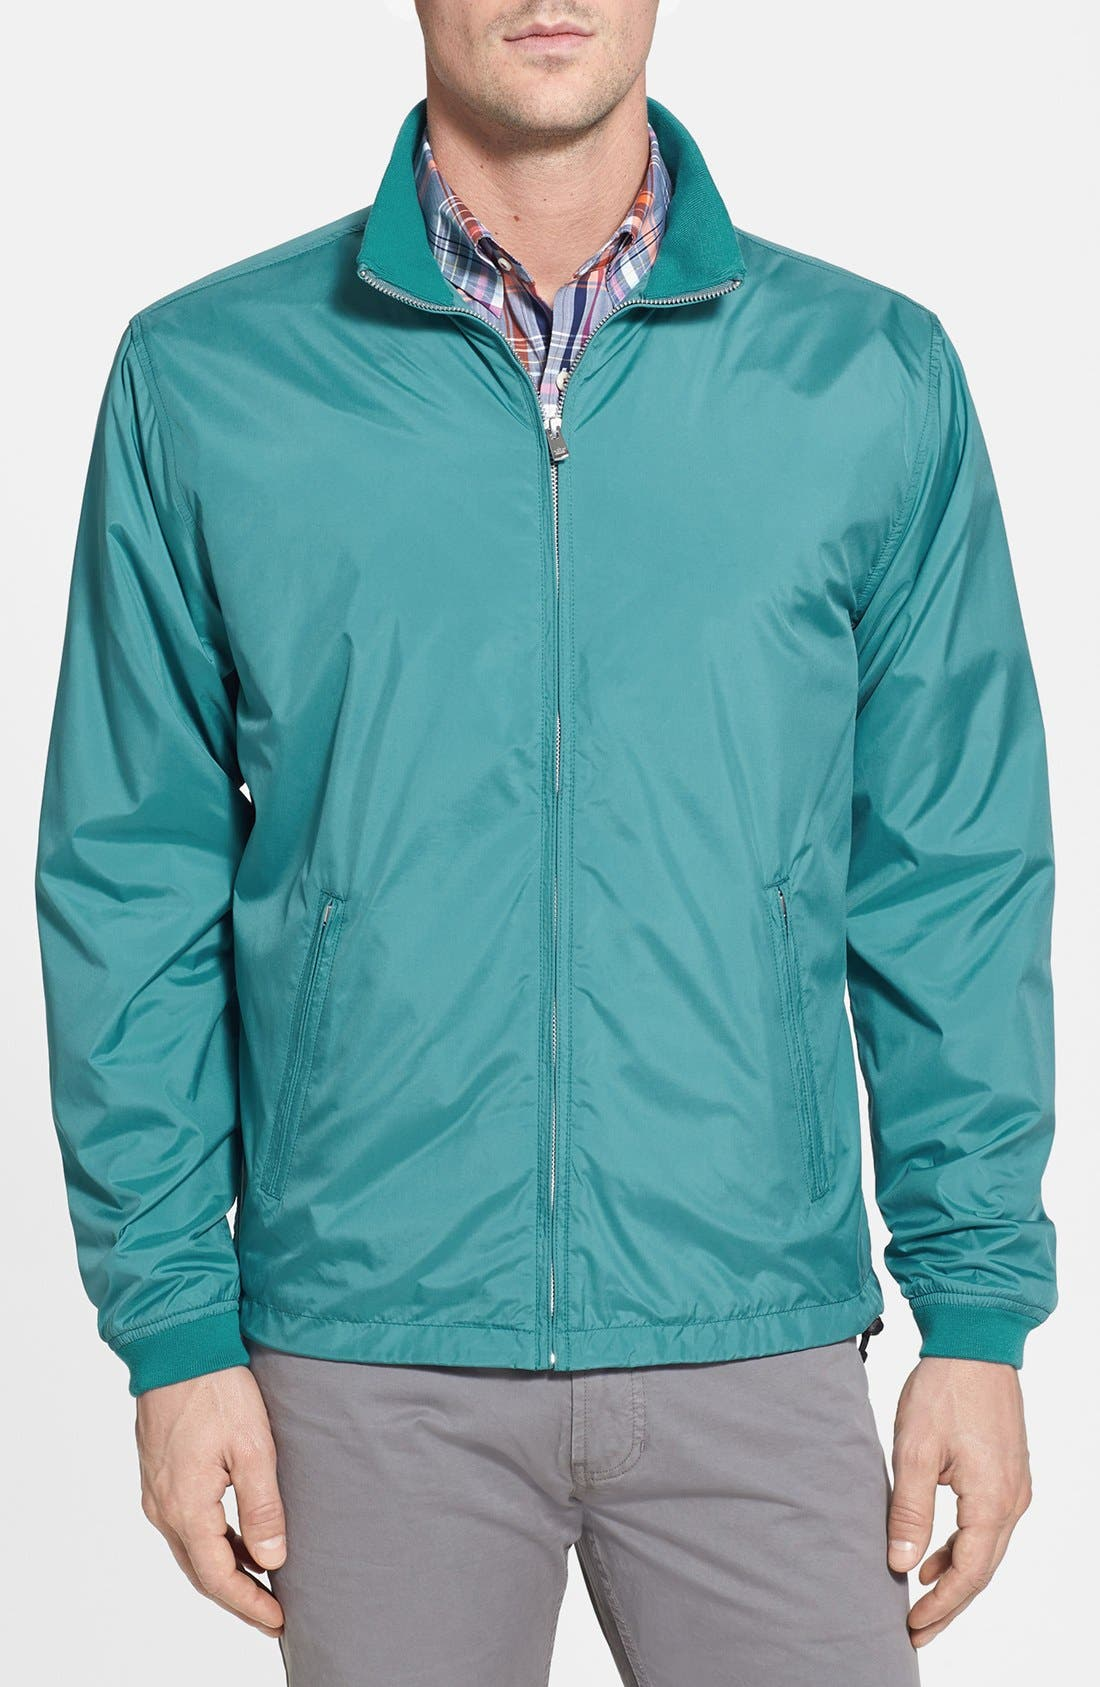 Alternate Image 1 Selected - Peter Millar 'Rally' Bomber Jacket